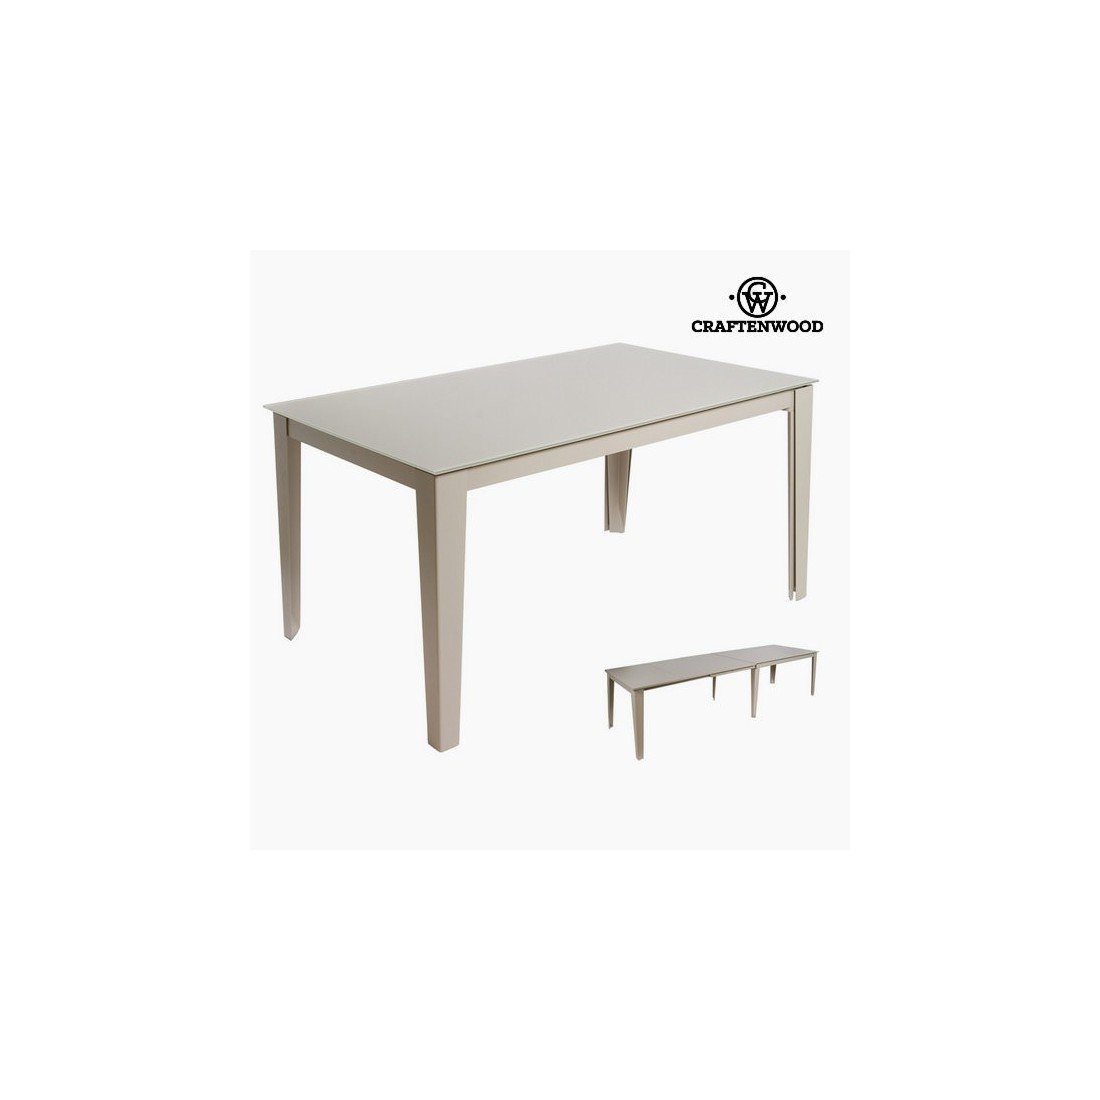 Craften Wood - Table extensible grise by Craftenwood - bb_S0103241